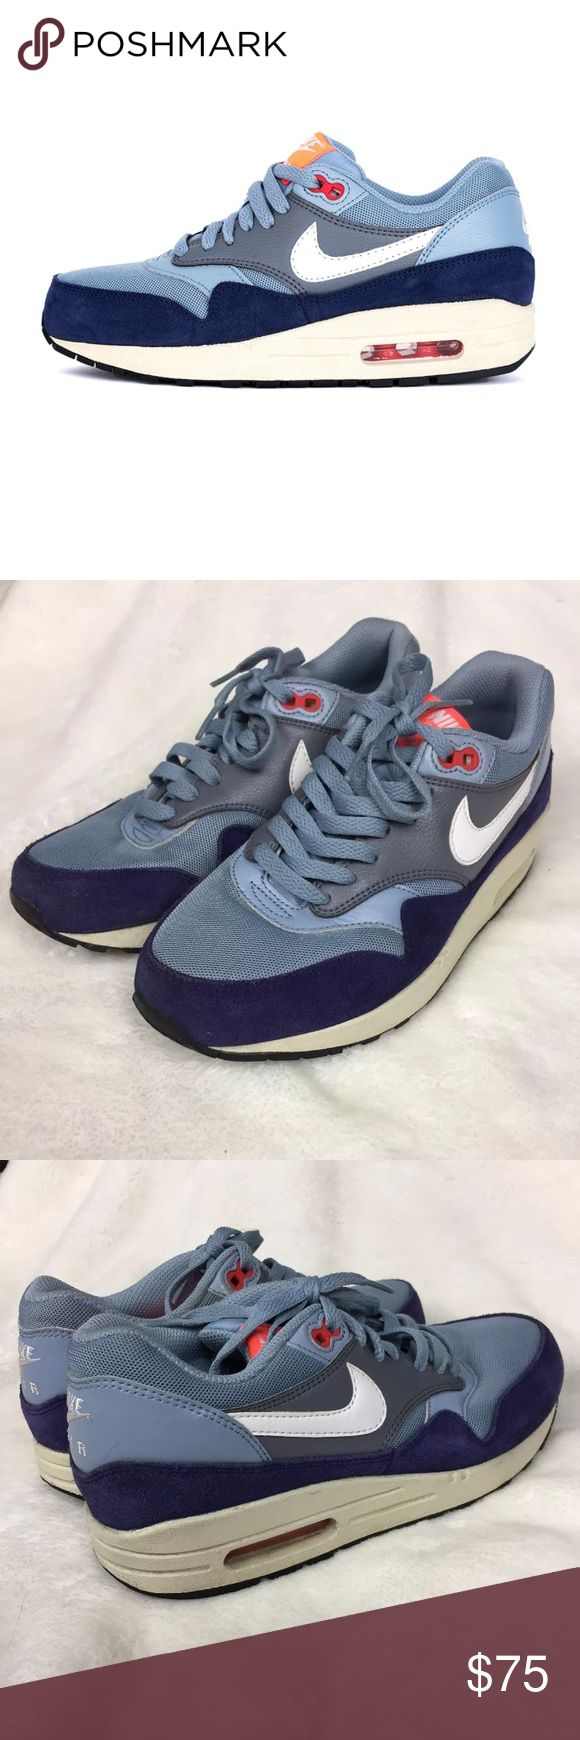 """Nike Air Max 1 Essential Blue/Gray Running Shoes Nike women's Air Max 1 Essential blue/gray running shoes, size 7. Low heel of 1"""". No trades, but feel free to use the offer button. Thank you for browsing my closet. Nike Shoes Athletic Shoes"""